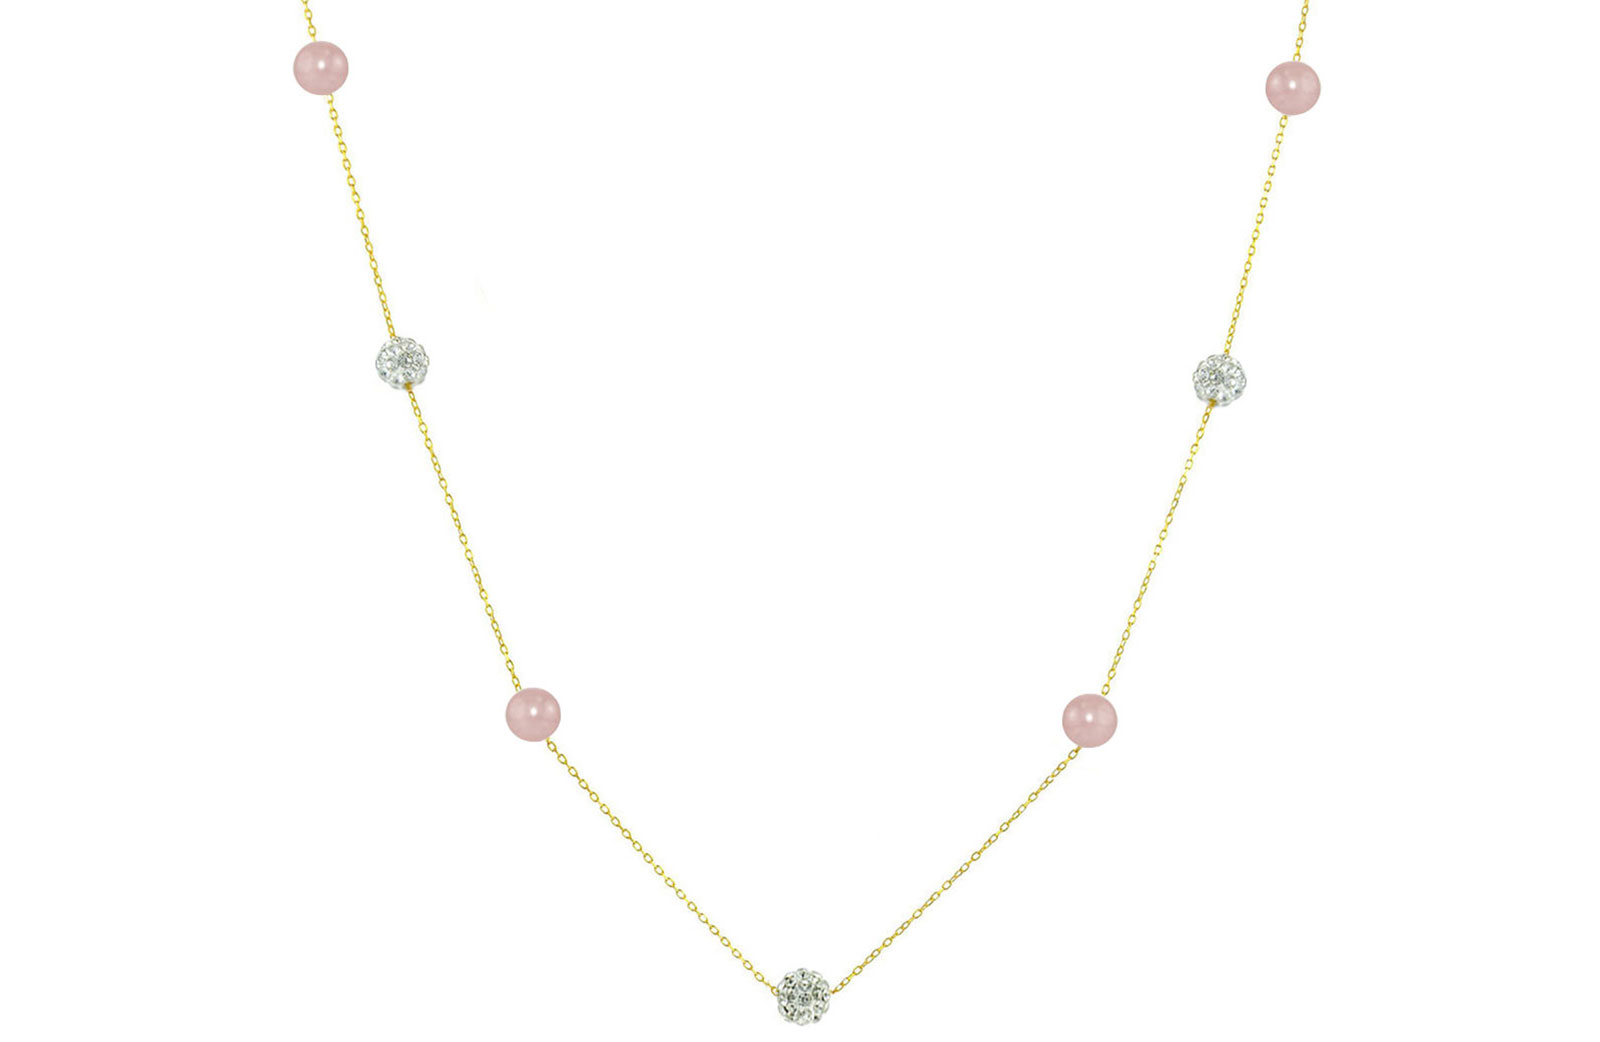 Vera Perla 18K Solid Gold Gradual Built-in 5-6mm Crystal Ball and Purple Pearls Necklace